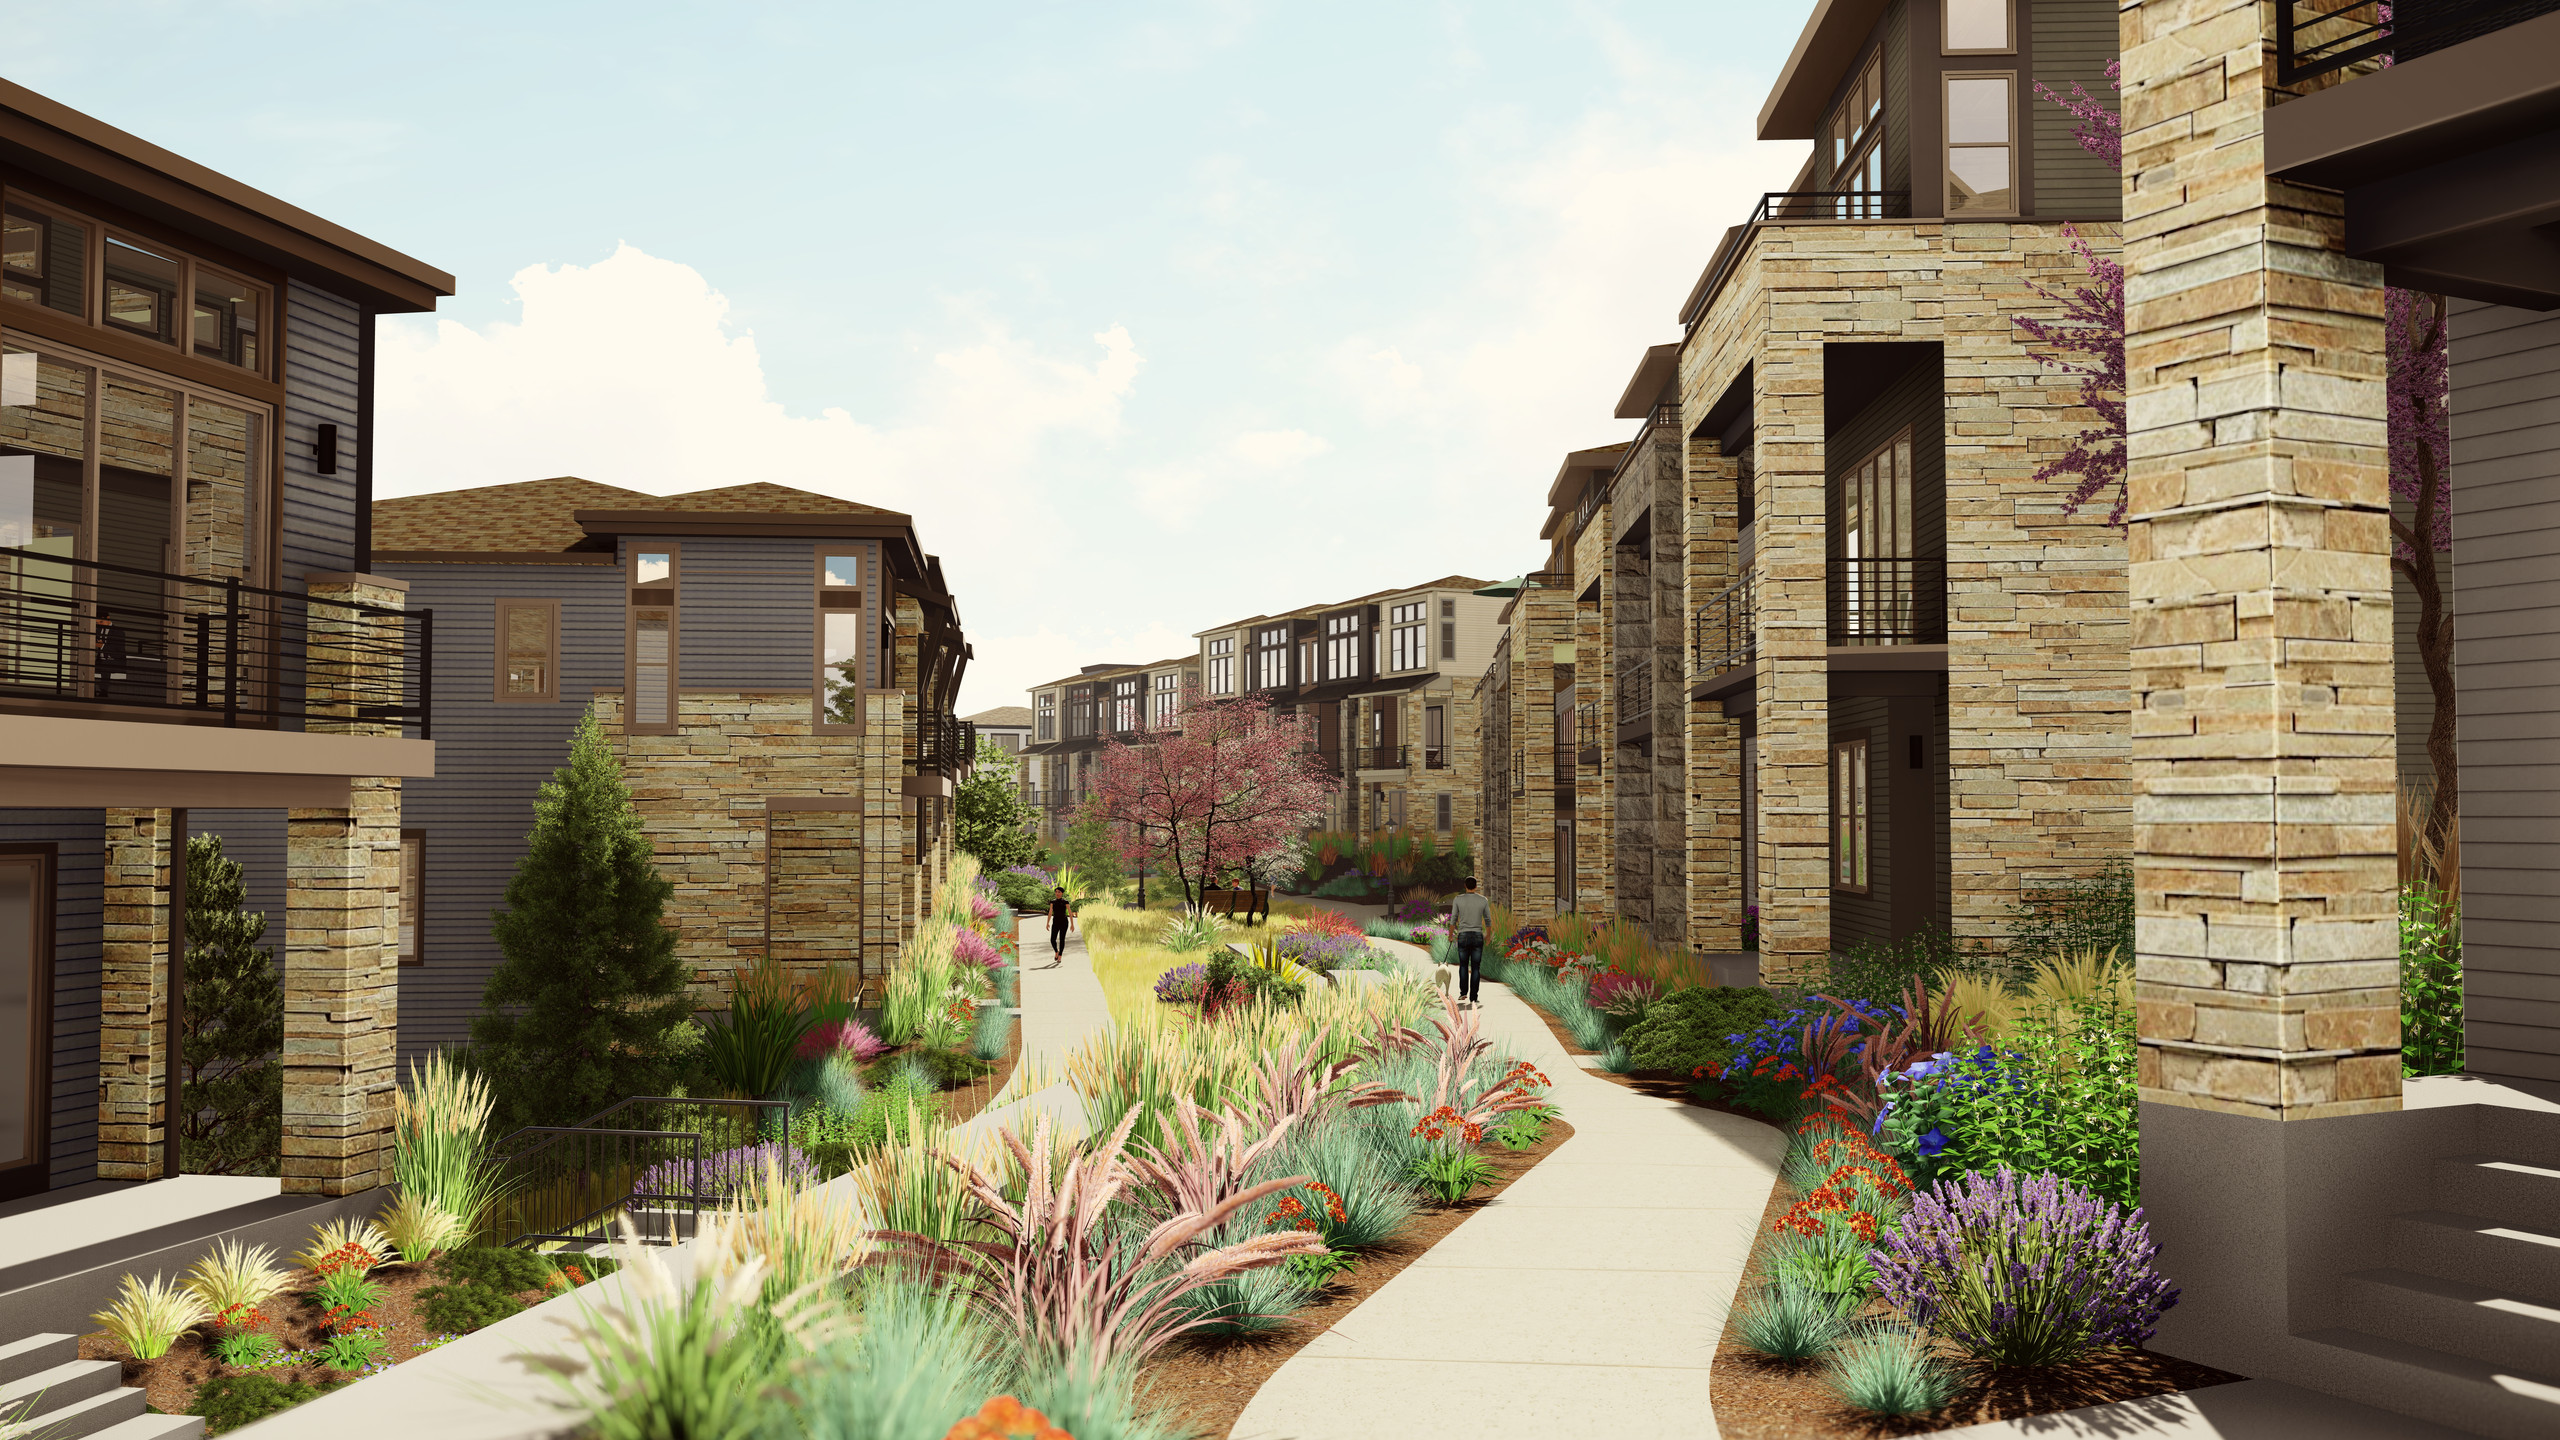 Townhomes at Downtown Superior, by Remington Homes